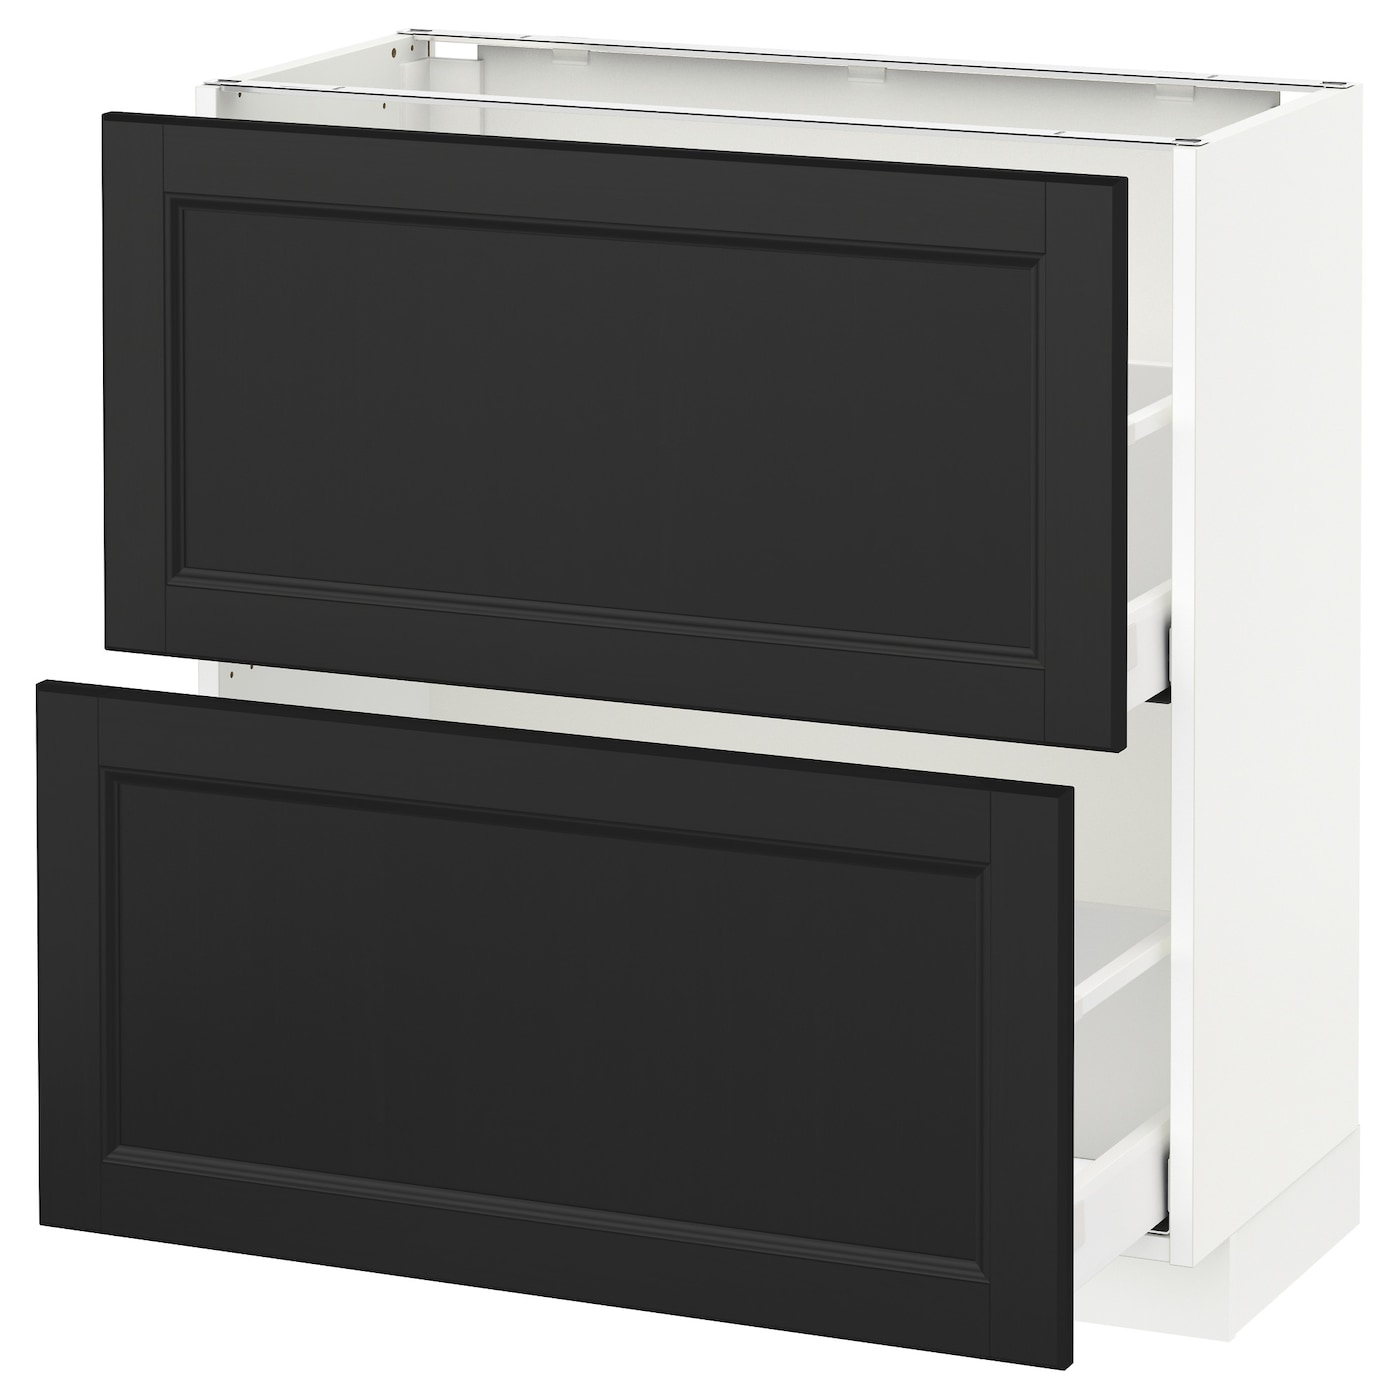 metod maximera base cabinet with 2 drawers white laxarby black brown 80x37 cm ikea. Black Bedroom Furniture Sets. Home Design Ideas